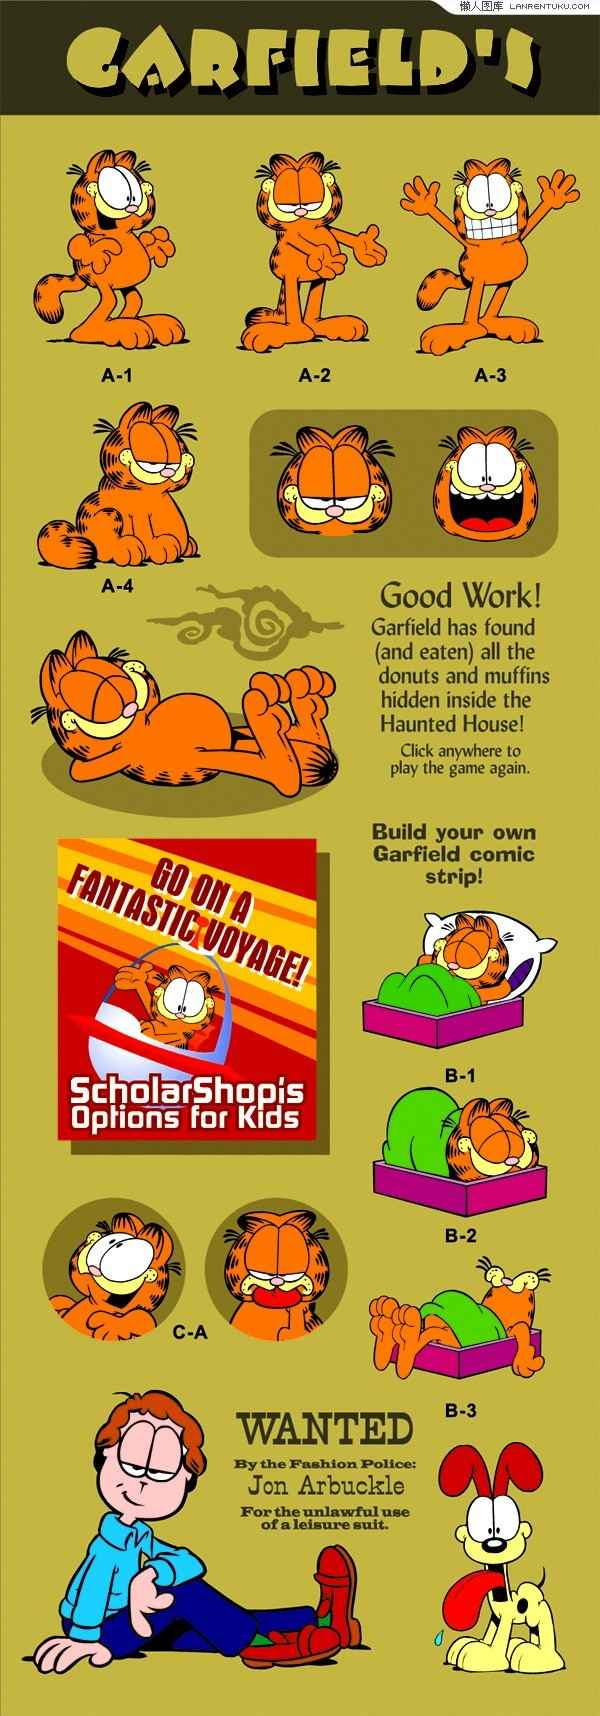 Garfield cartoon vector material